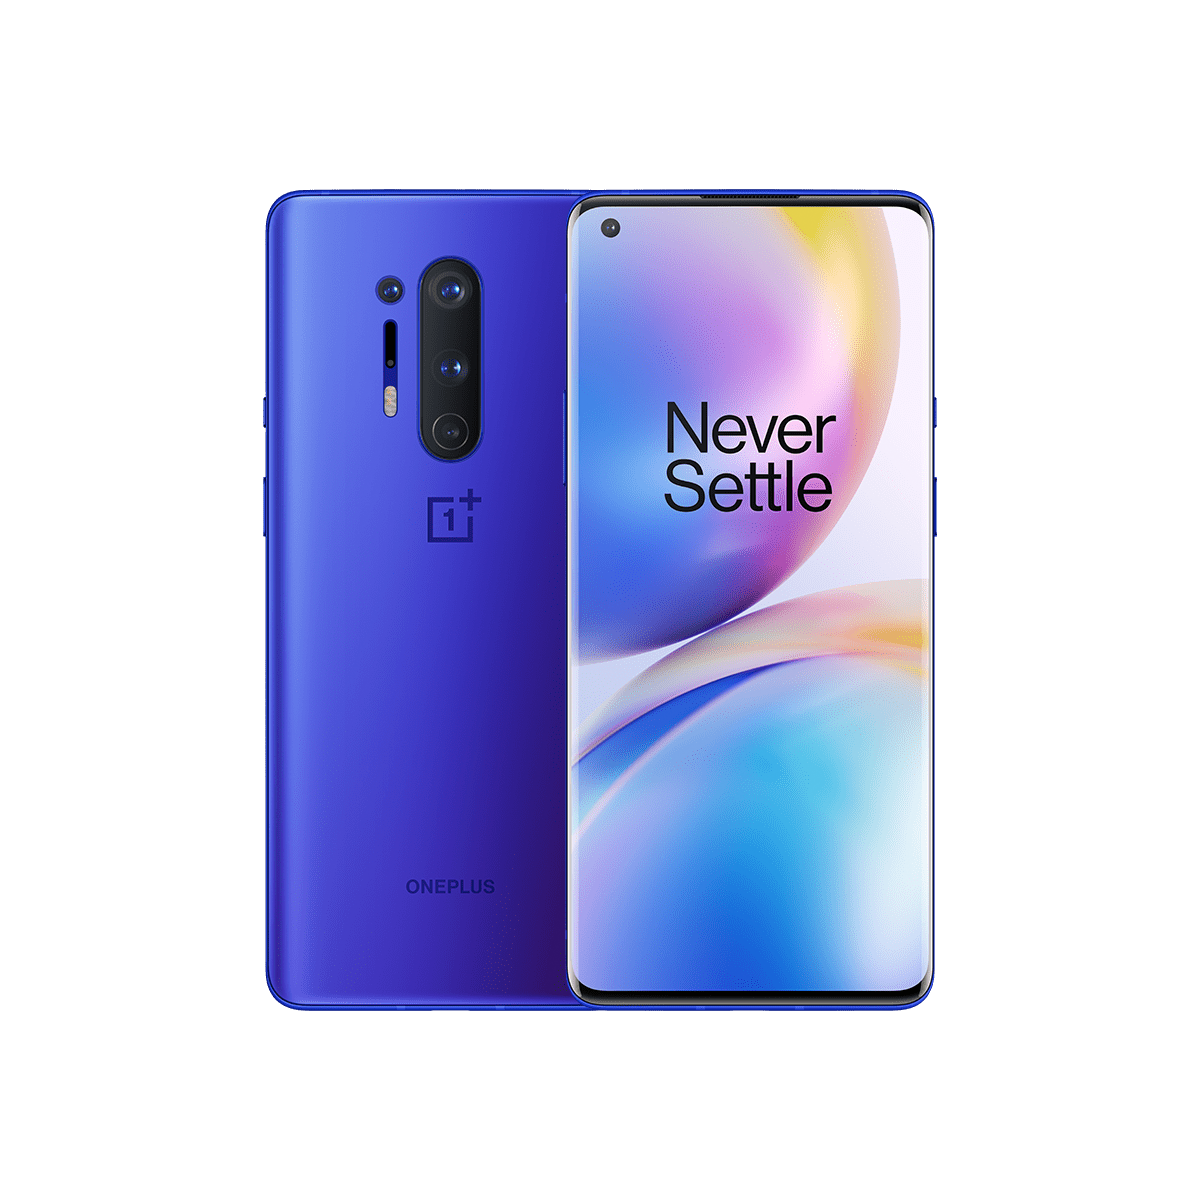 OnePlus 7T Pro receives a massive price cut in India